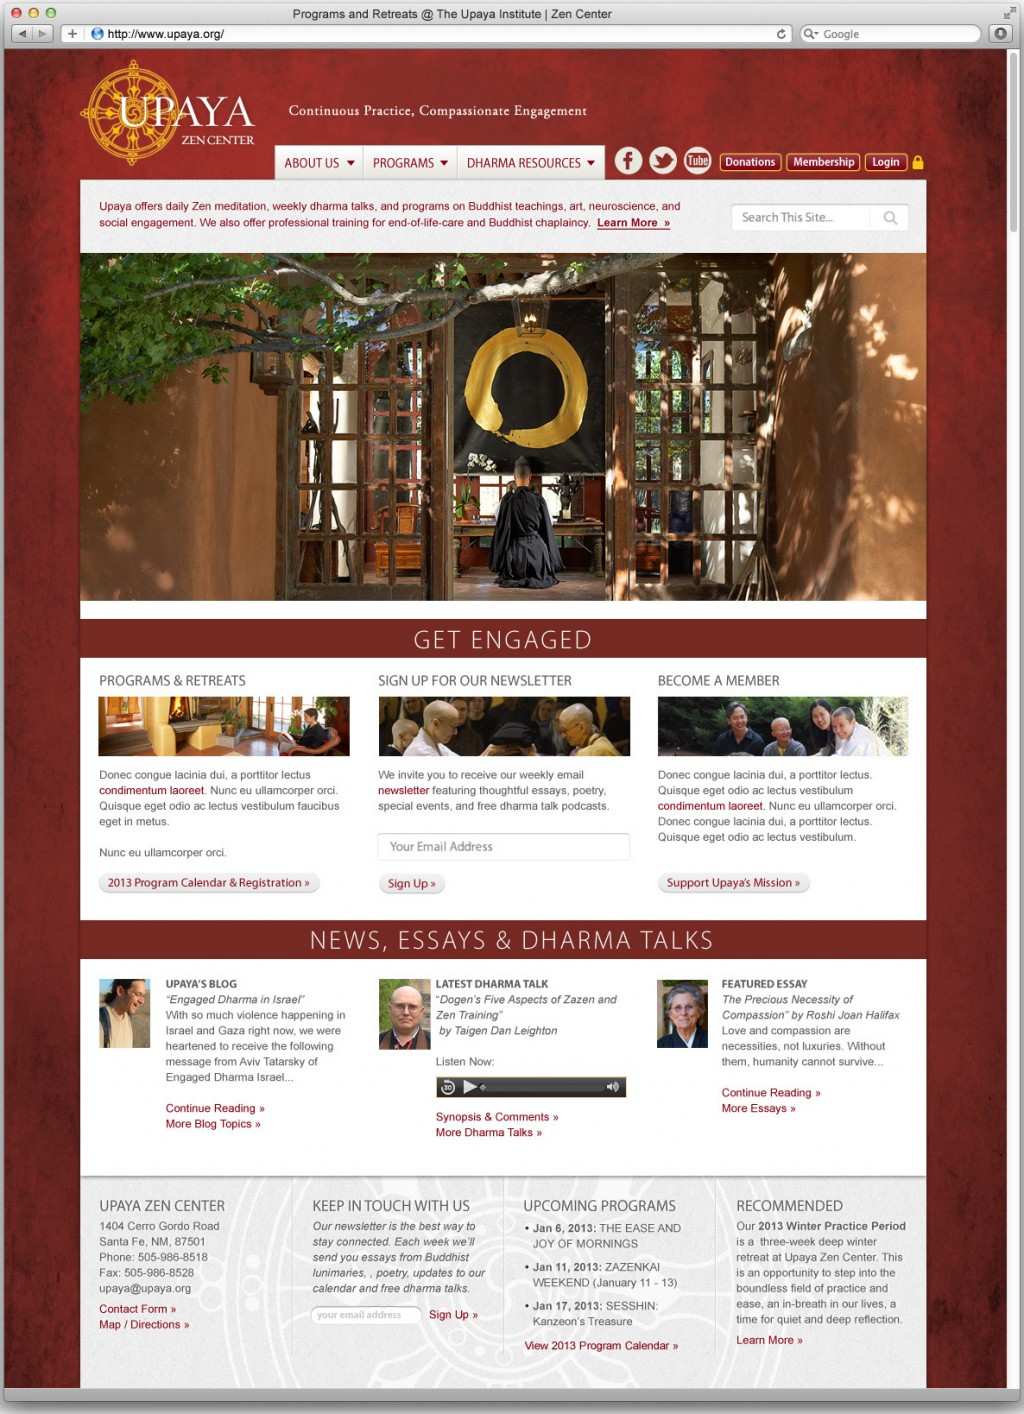 The 2014 redesign for www.upaya.org